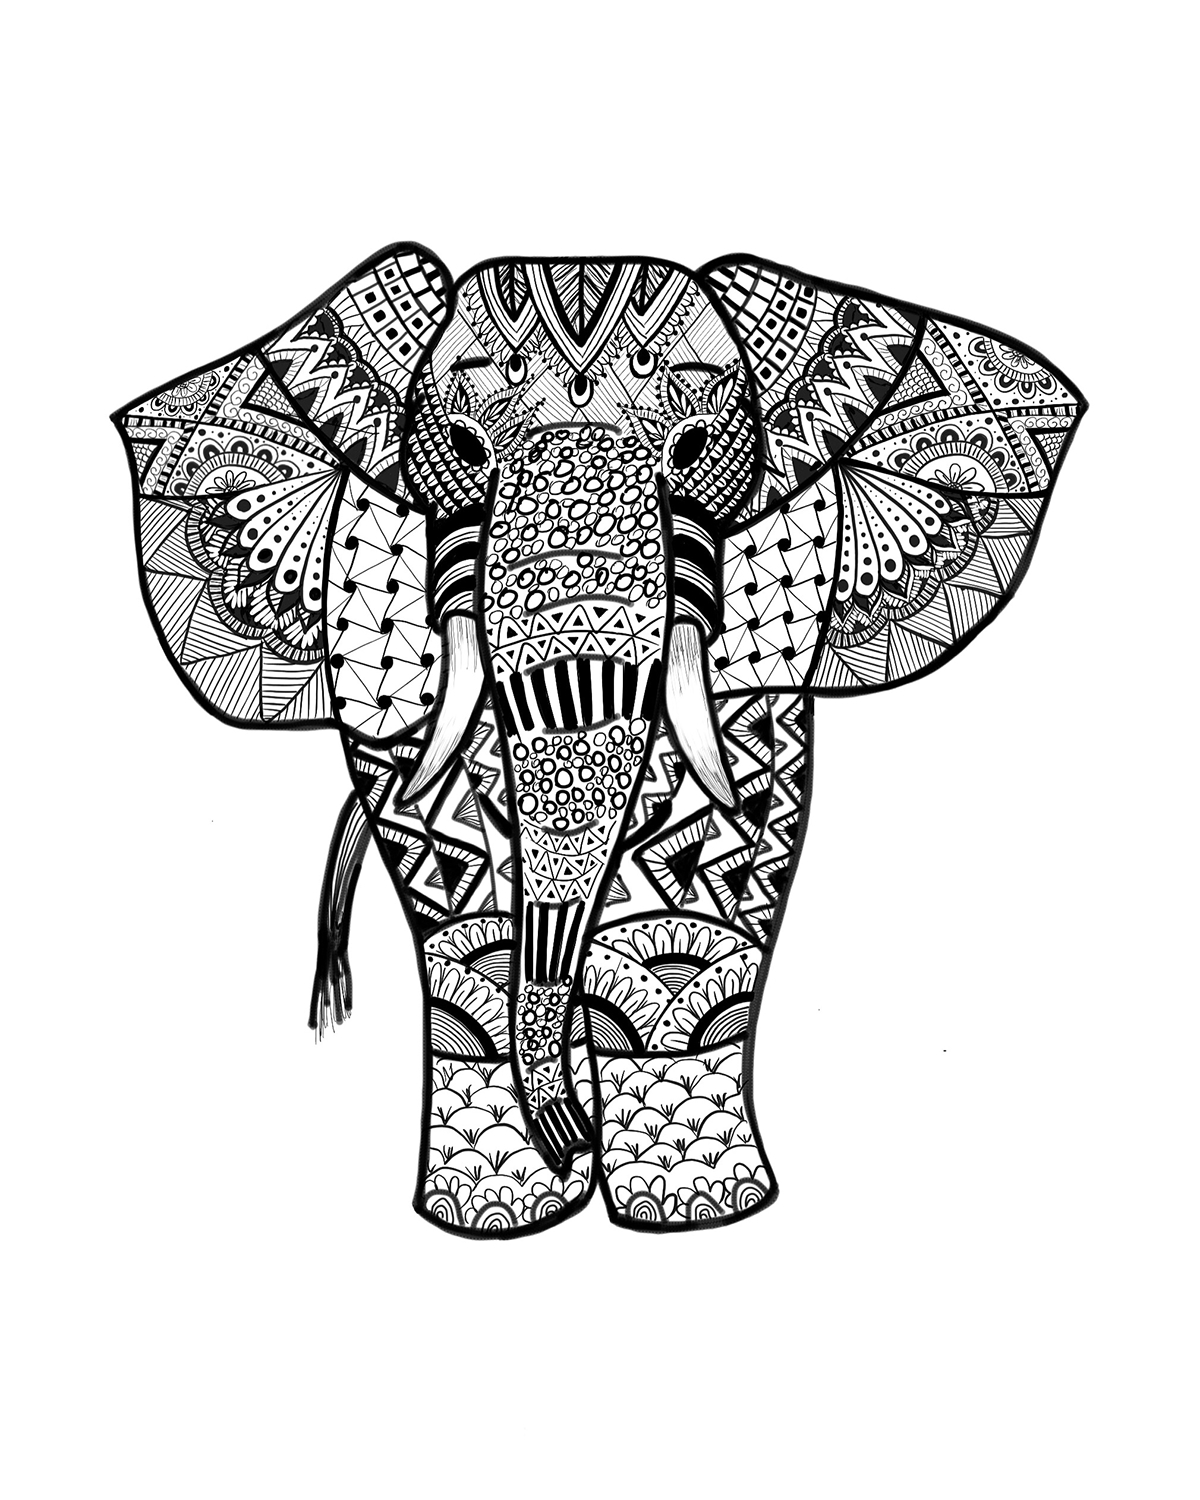 coloring book elephant images print download teaching kids through elephant coloring coloring elephant images book